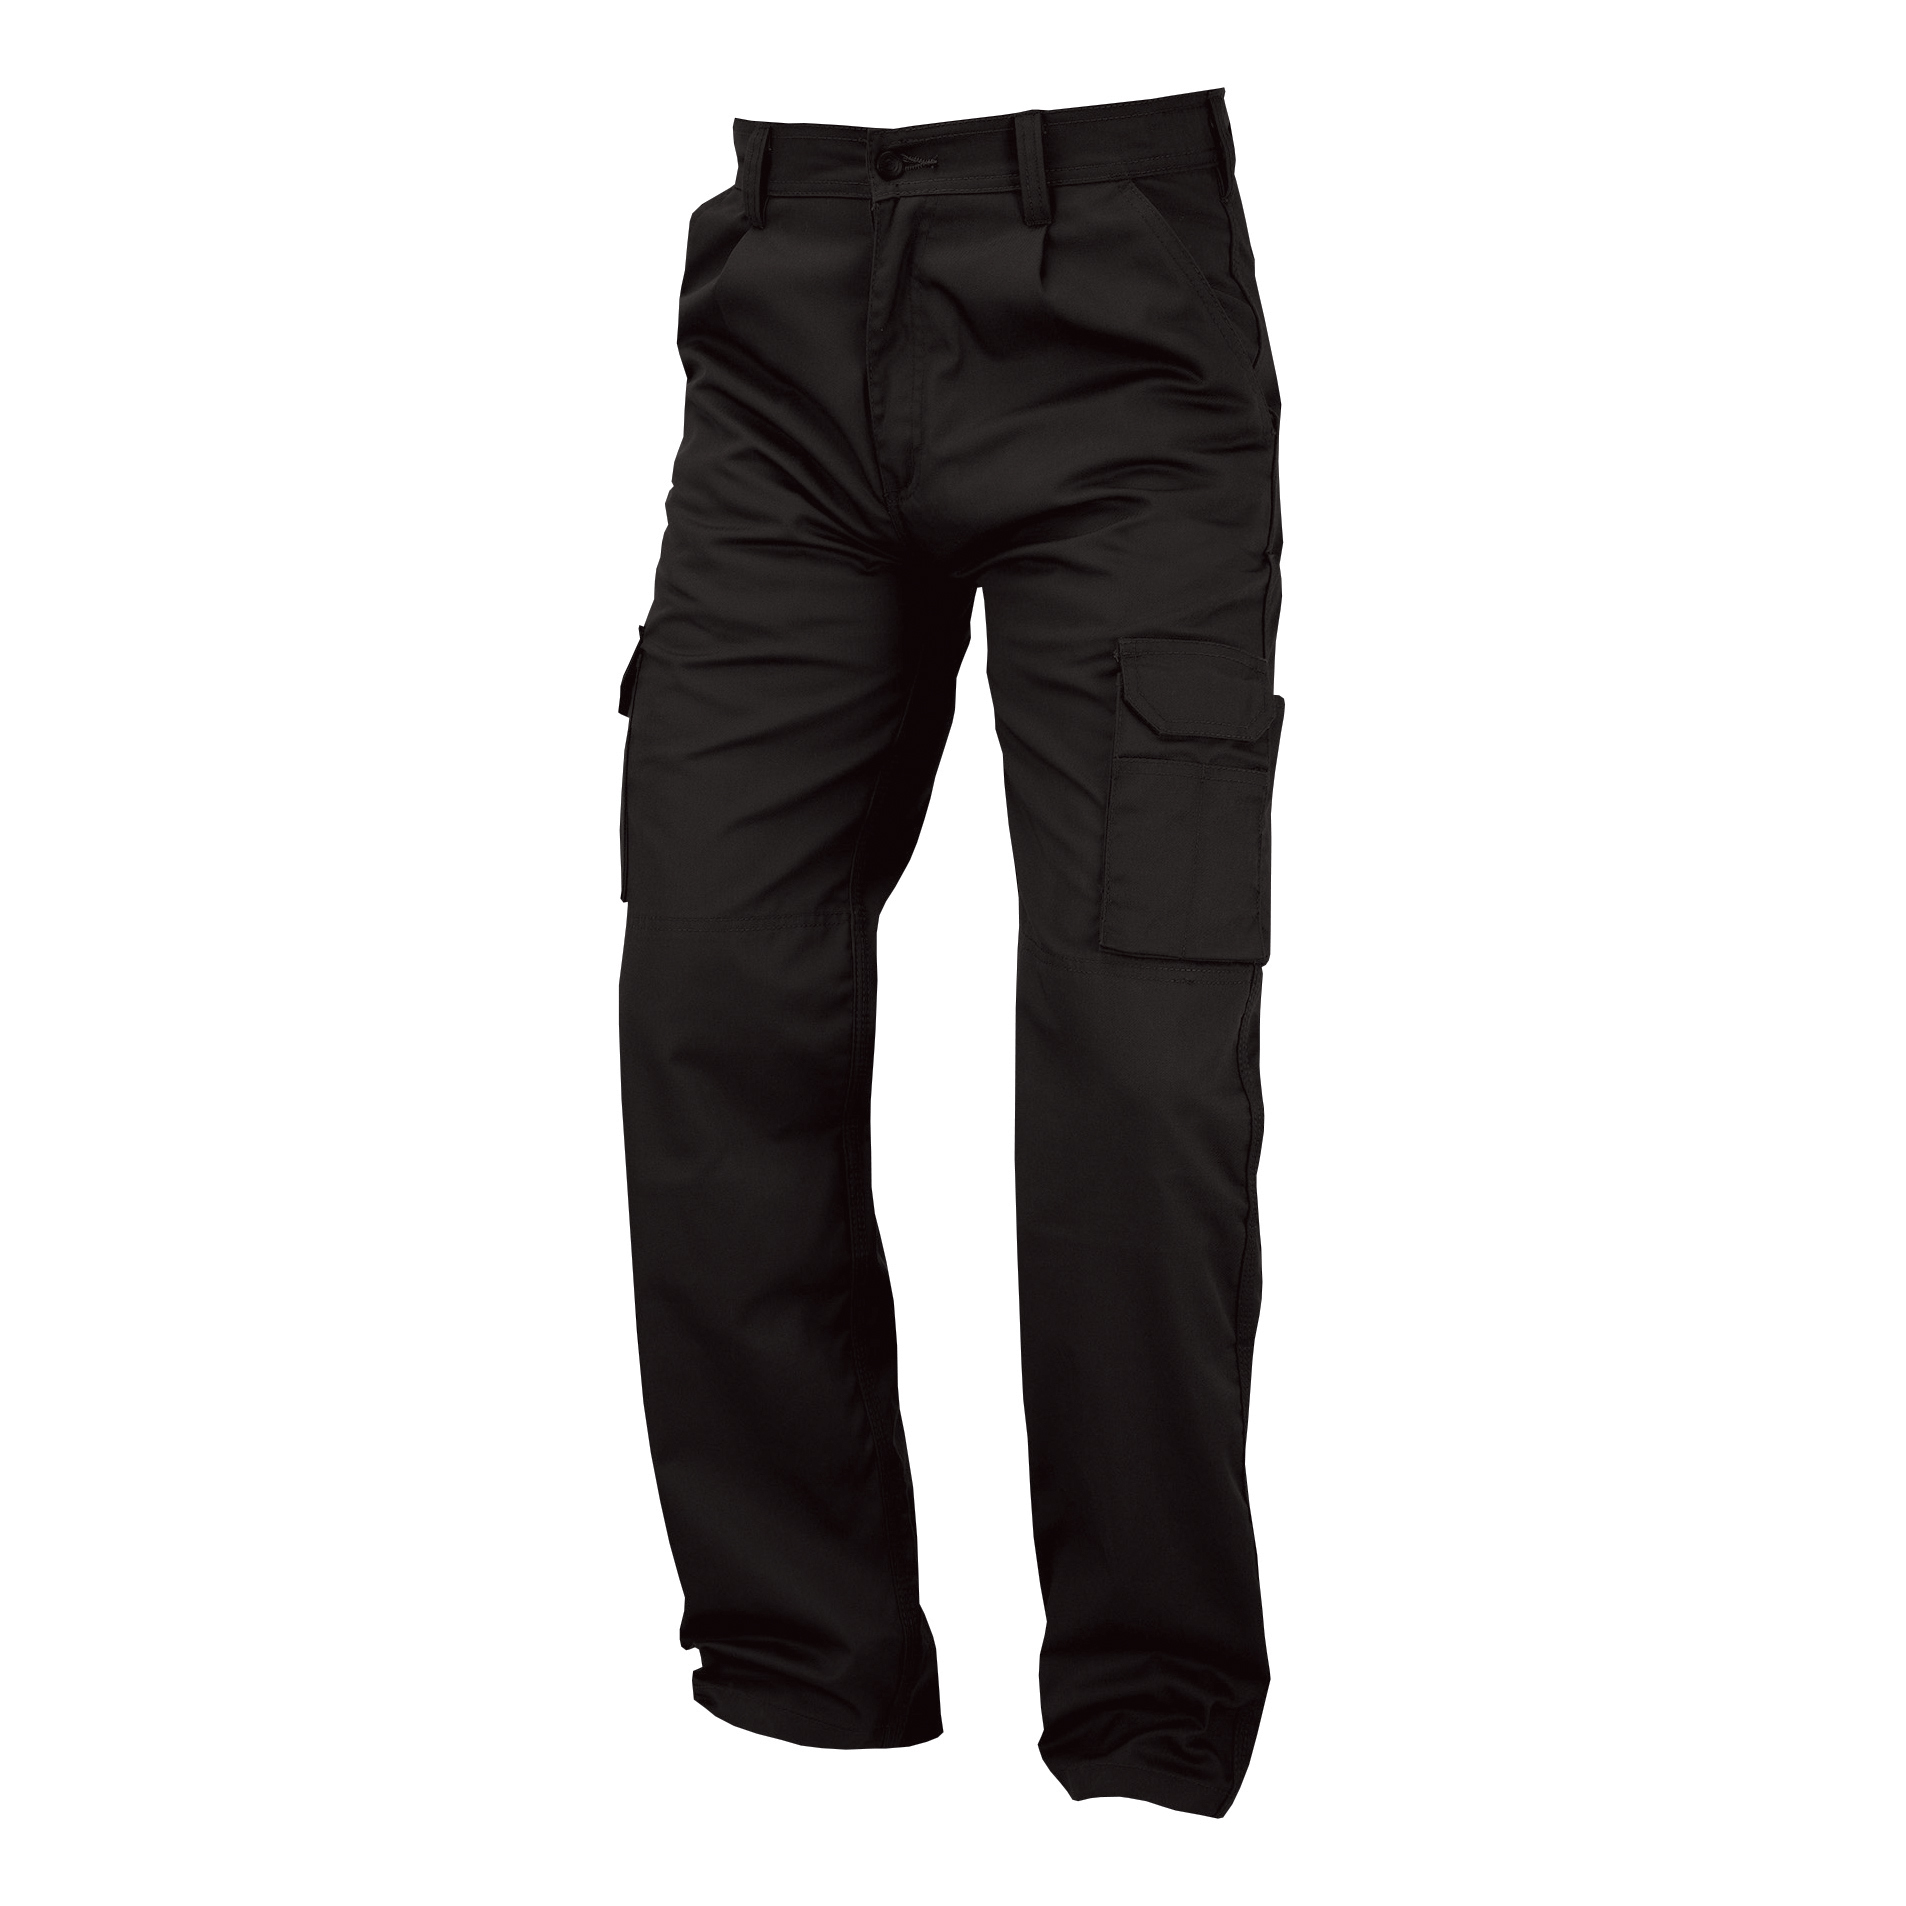 Combat / Cargo Combat Trousers Polycotton with Pockets Size 32in Long Black Ref PCTHWBL32T *1-3 Days Lead Time*